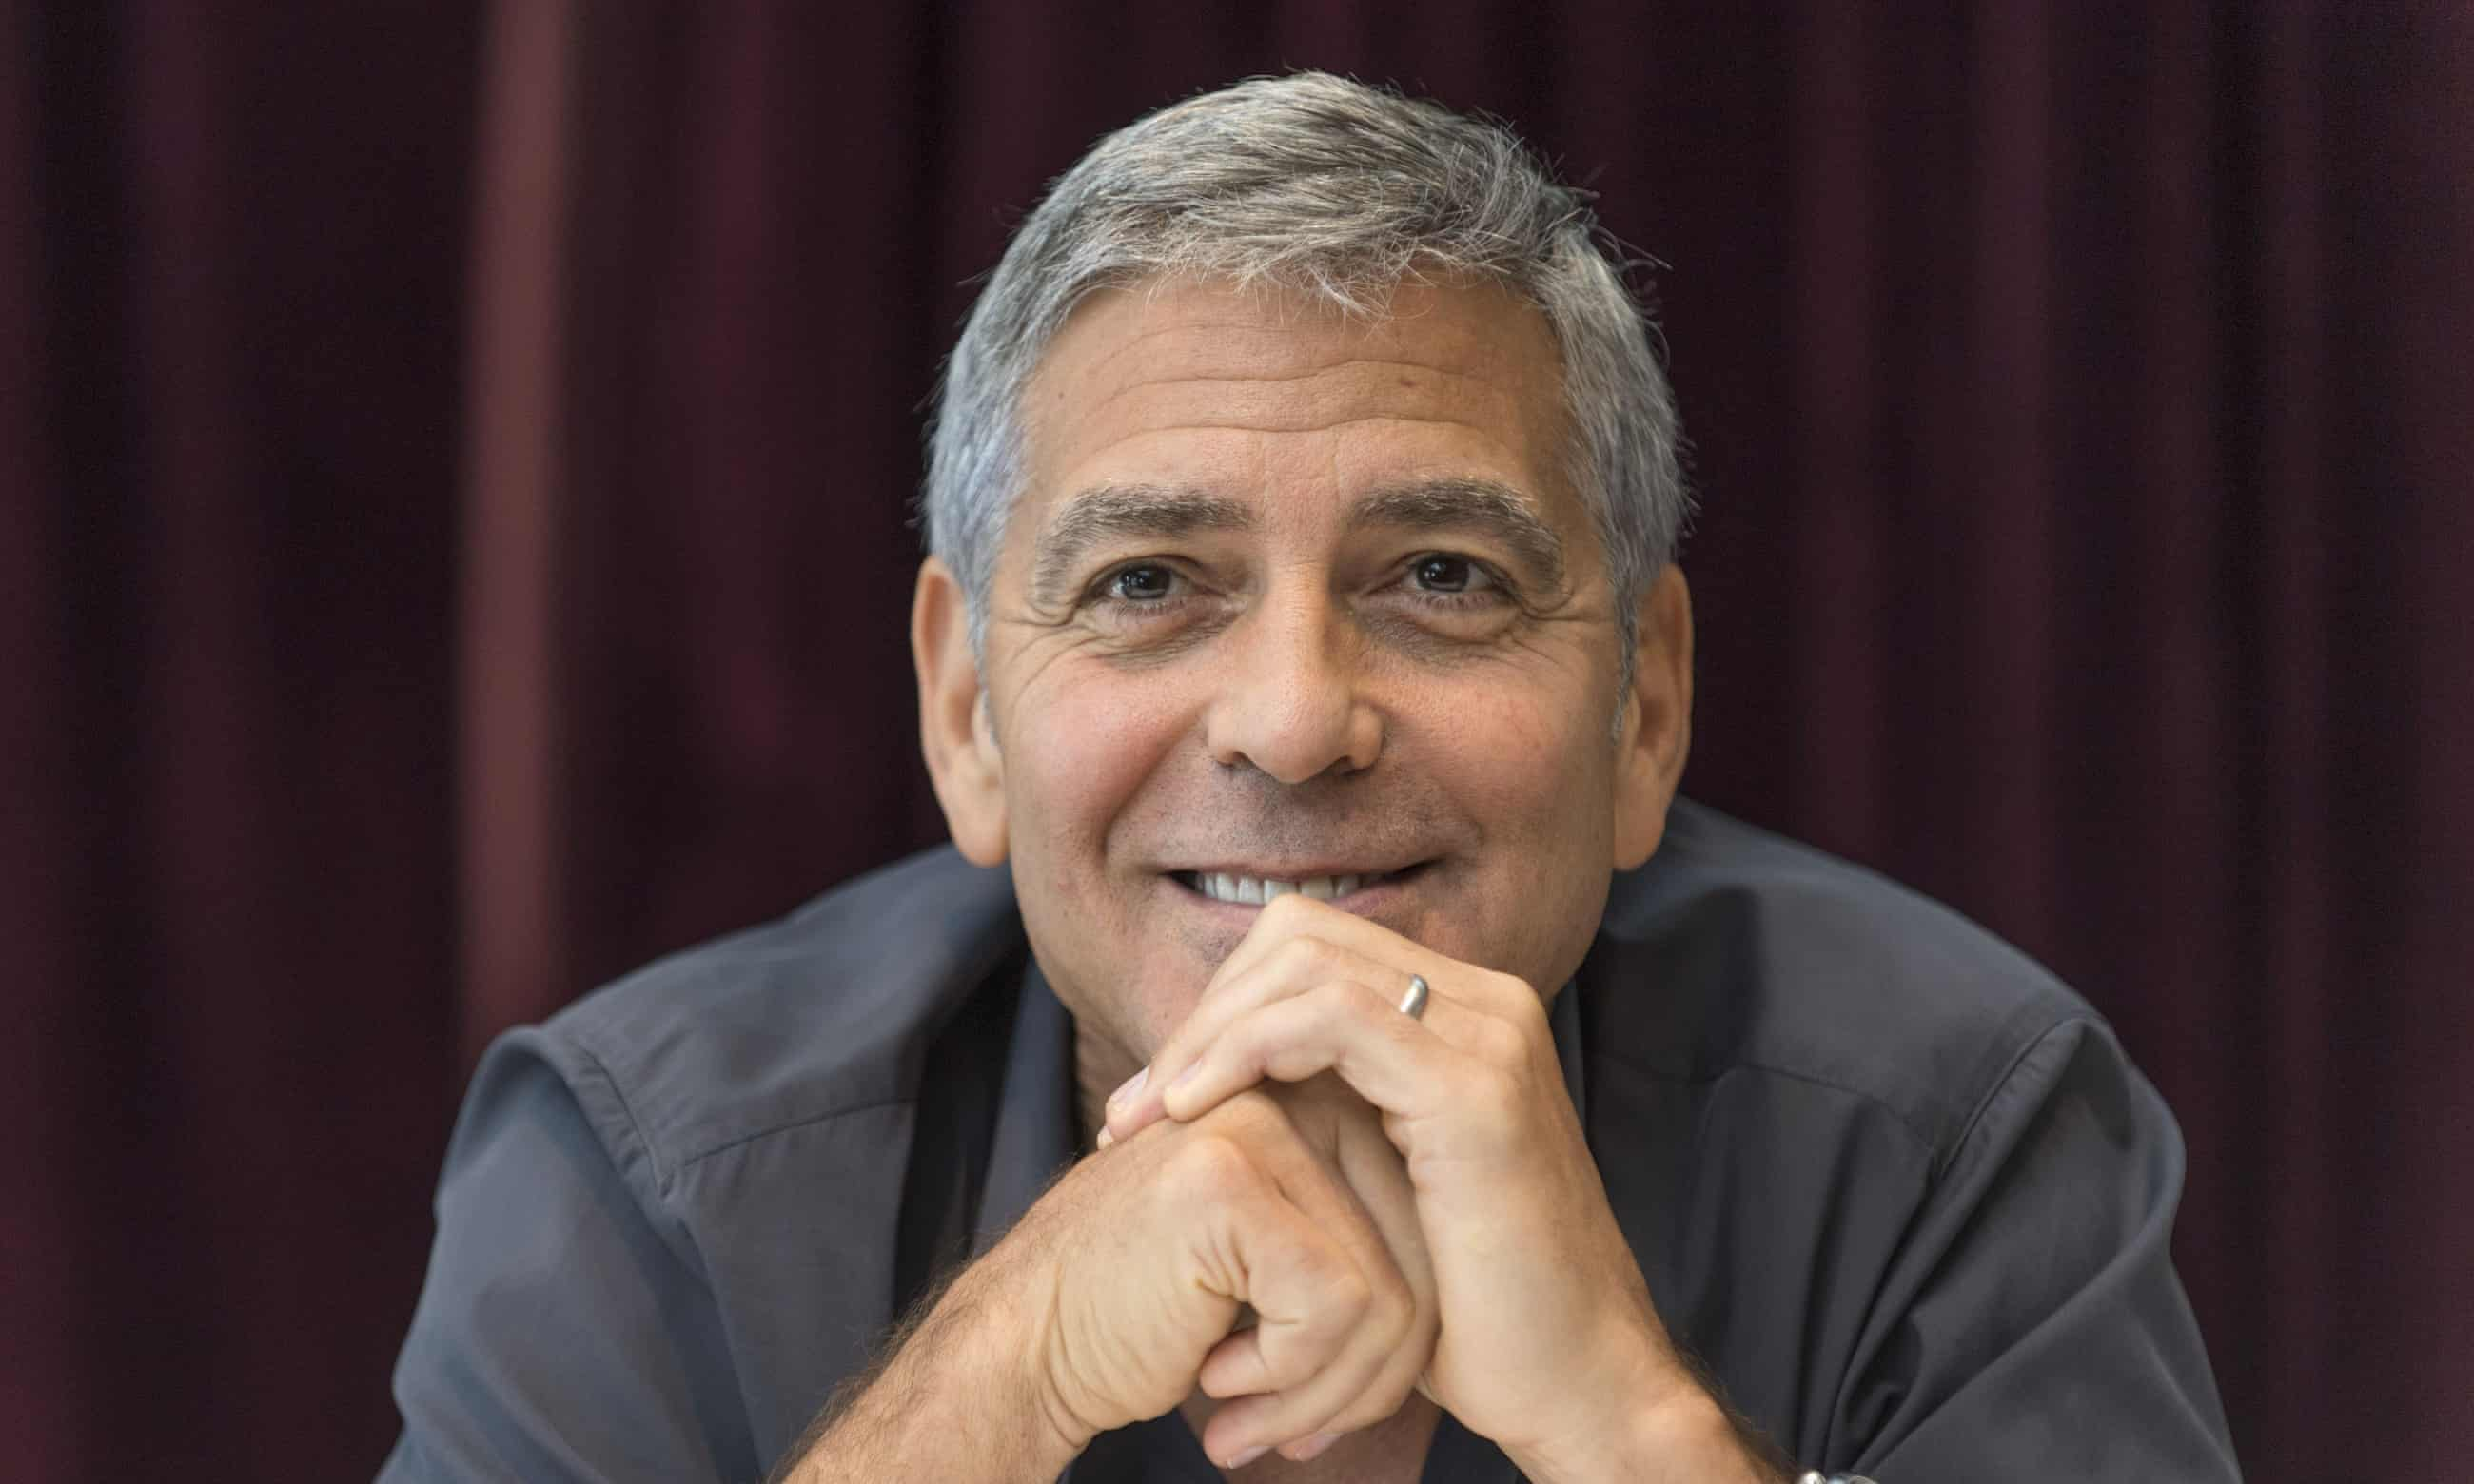 George Clooney: my letter to the Parkland students (theguardian.com)